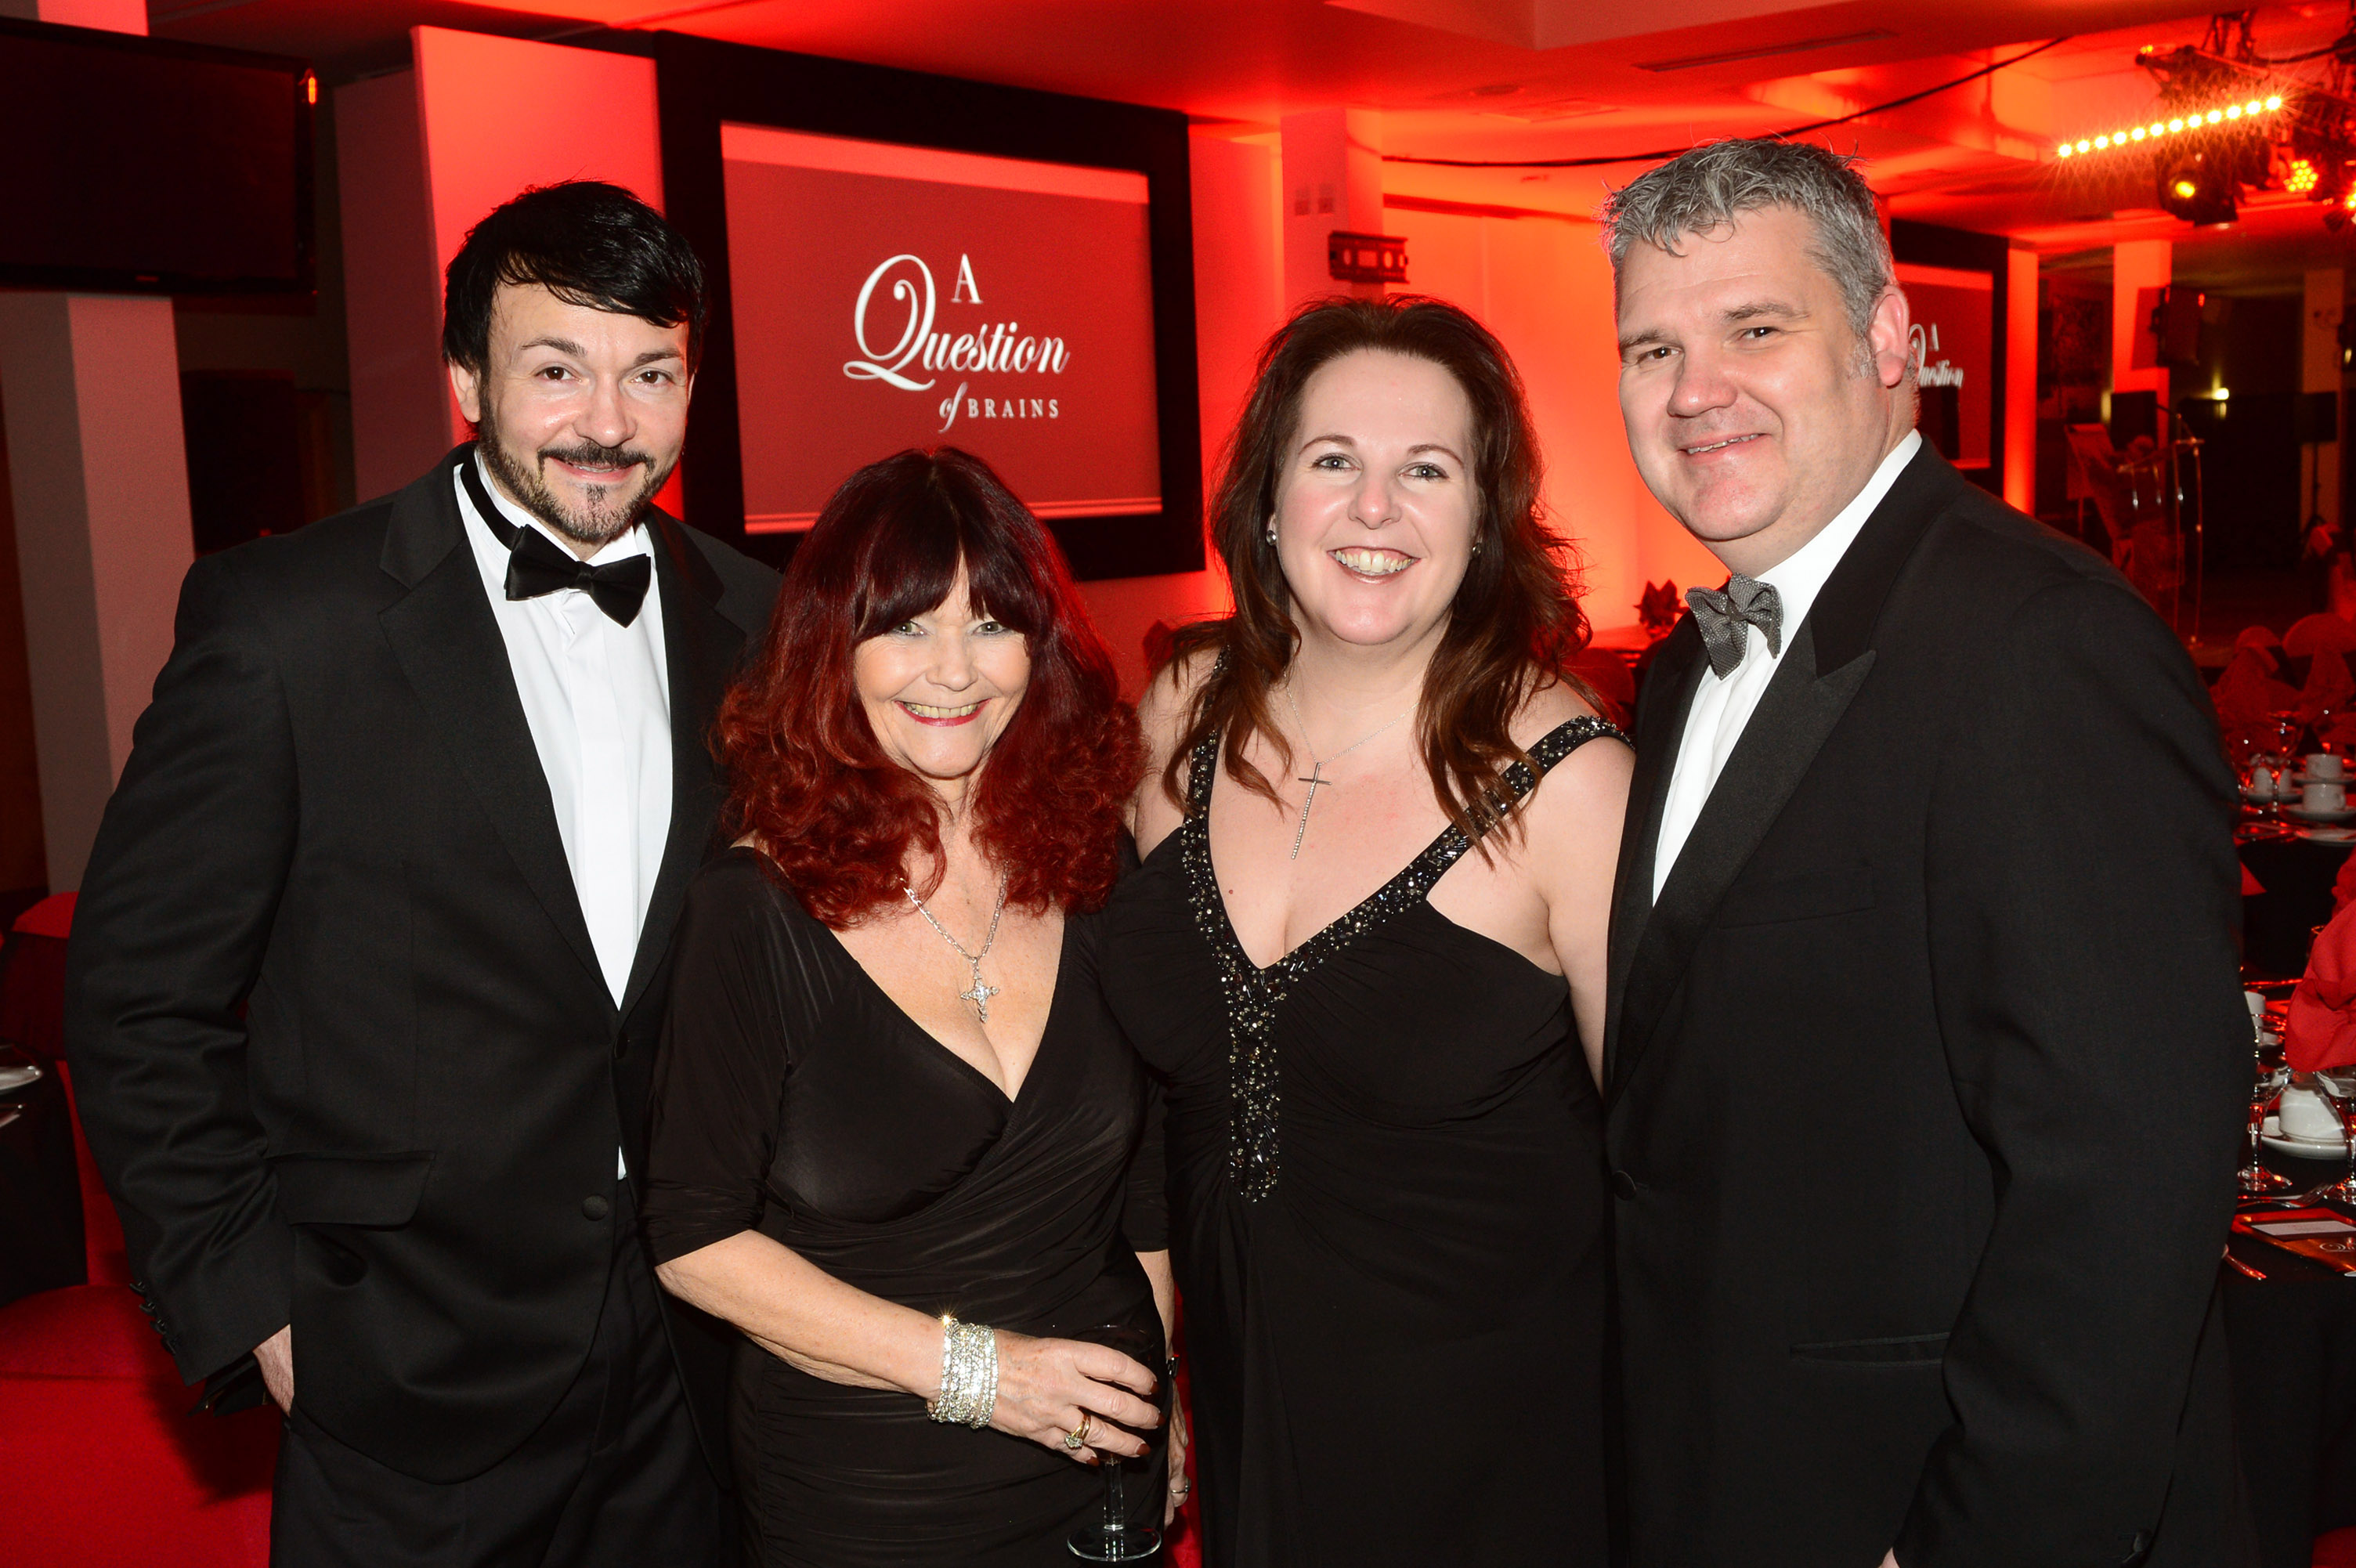 656456-01 : ©Lionel Heap : 2016 A Question of Brains Charity Evening in Aid of Steps : L-R Nick Wallbank, Janet Russell, Sharon Keevins and Peter Jones.